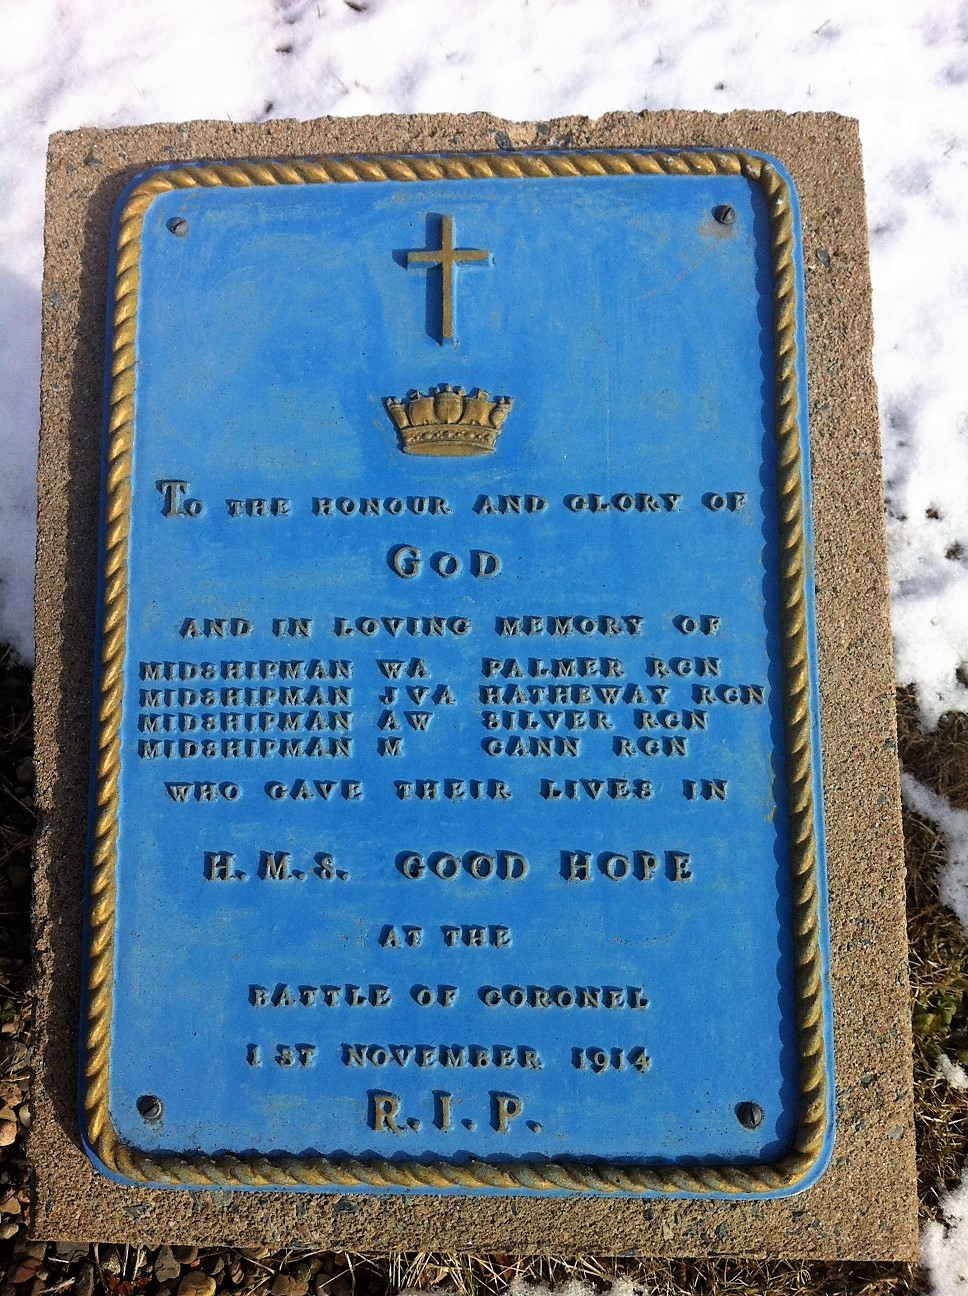 Memorial– The memorial plaque at Canadian Forces Base Halifax to Malcolm Cann and his three fellow RCN Midshipmen who died in HMS Good Hope at the Battle of Coronel on 1 November 1914 during World War I.  The location of the main Canadian naval base, Halifax was where Malcolm Cann had undergone his initial training before joining HMS Good Hope.